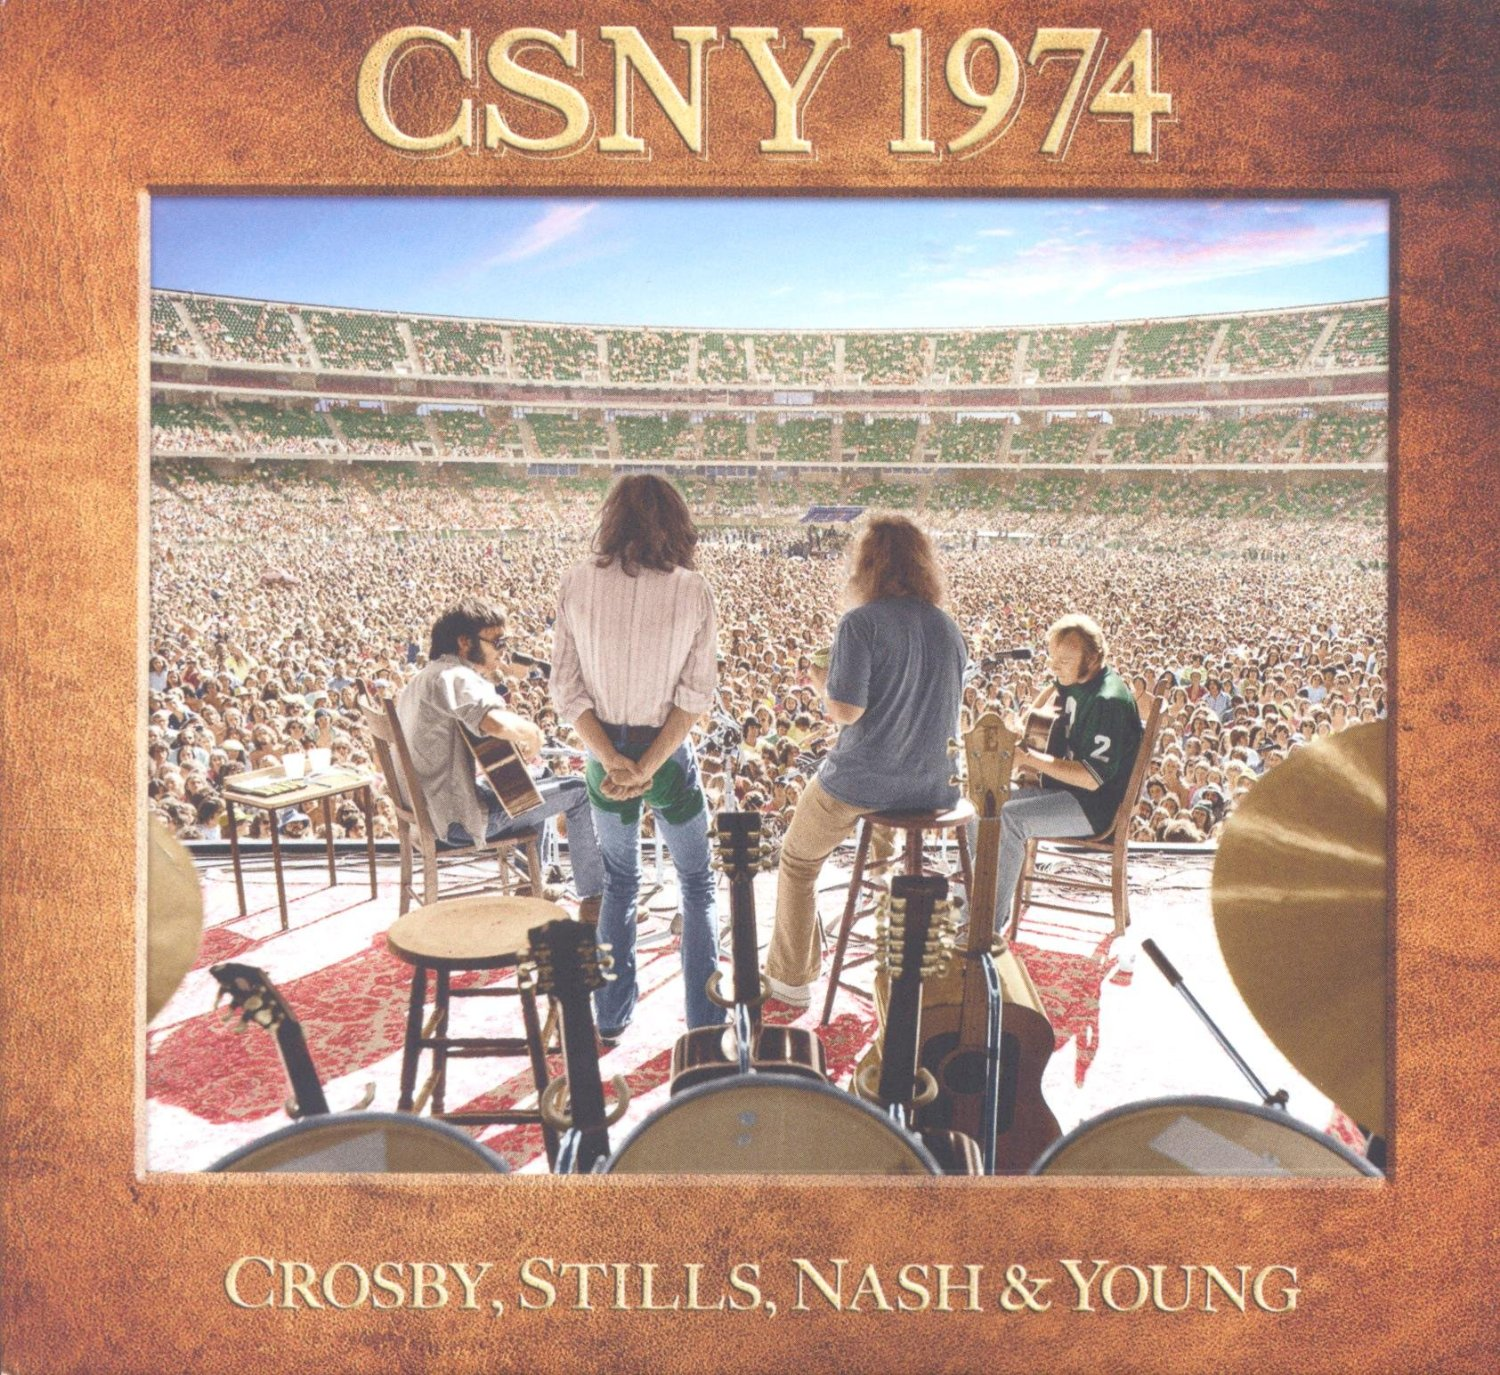 LaurelCanyonRadio.com - Crosby-Stills-Nash-Young-CSNY-1974